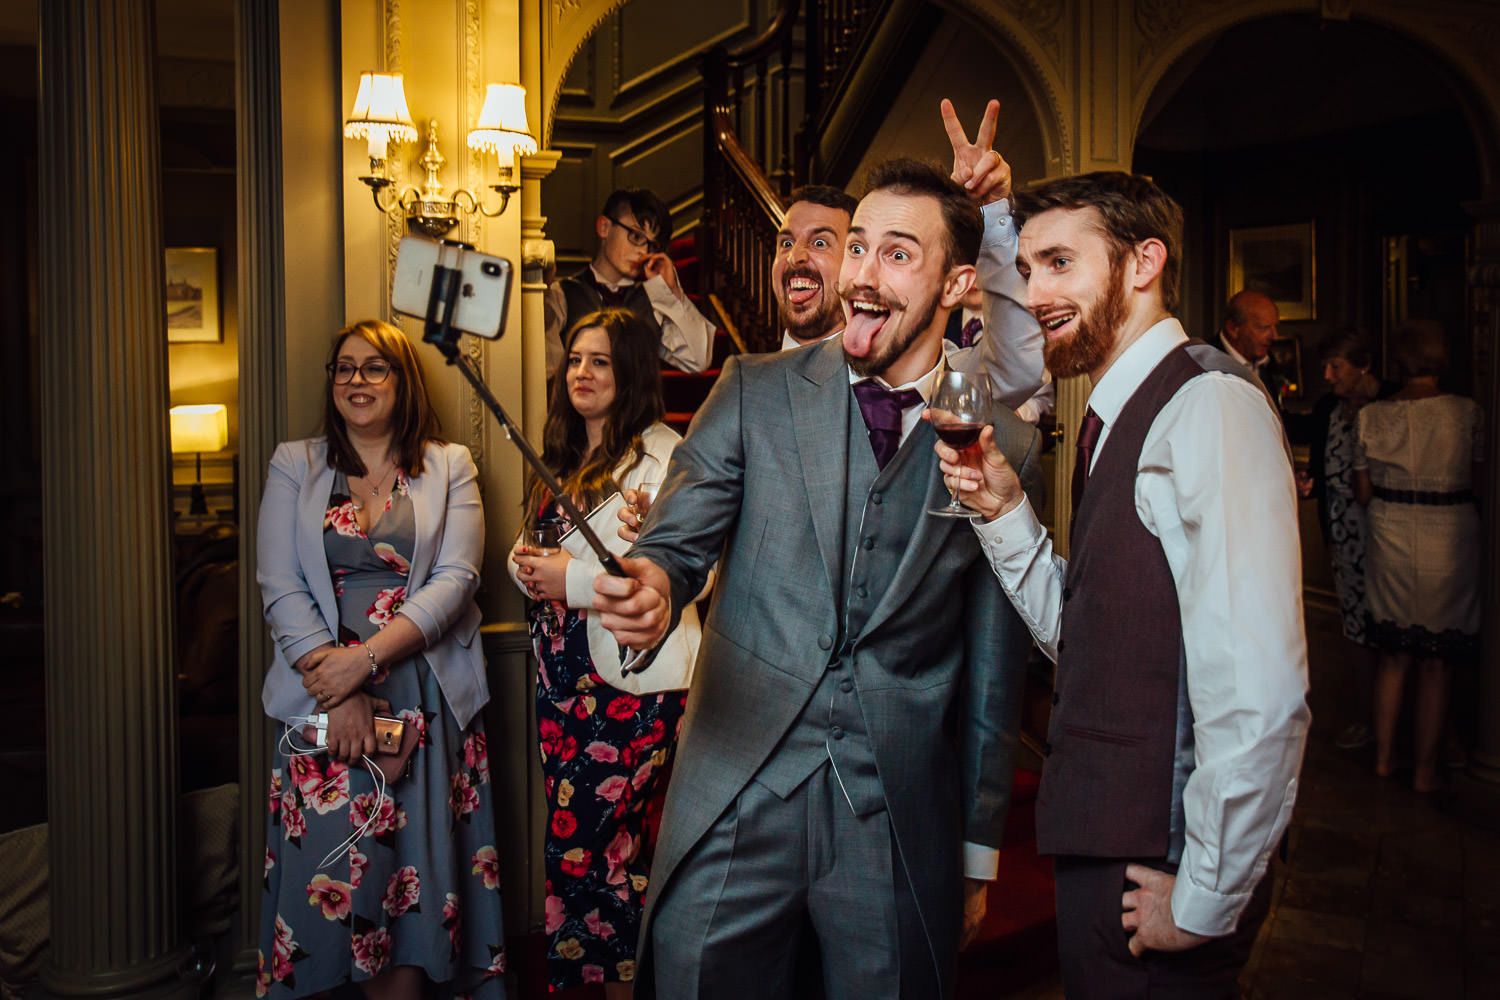 Wedding guests talking selfies at Thornton Manor